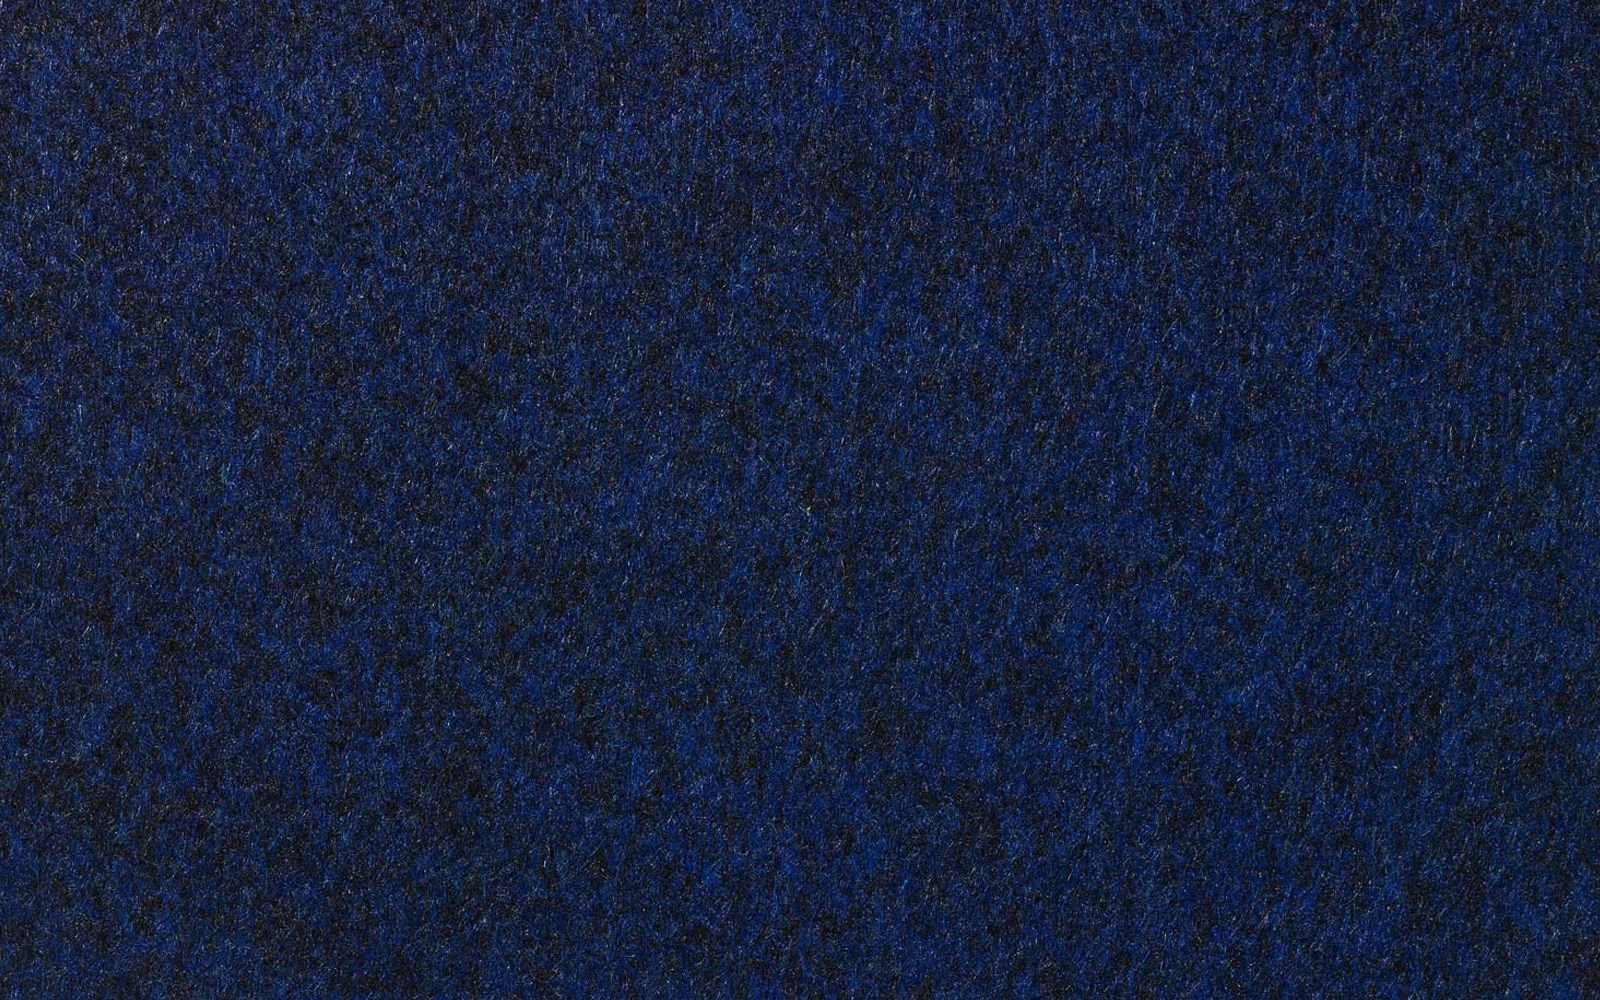 Needle felt carpet, blue